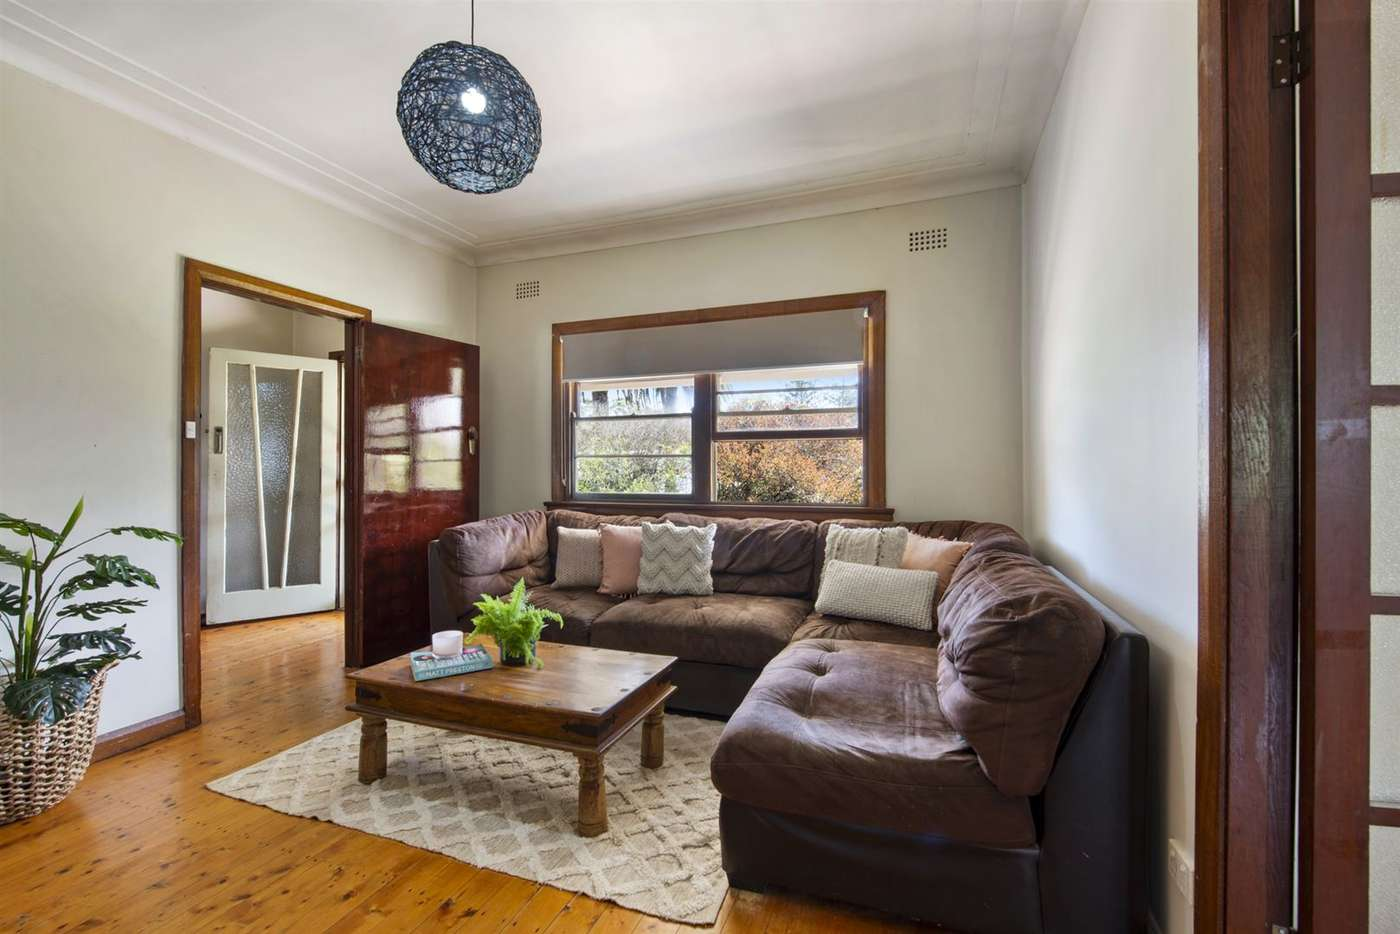 Fifth view of Homely house listing, 129 Lake Conjola Entrance Road, Lake Conjola NSW 2539